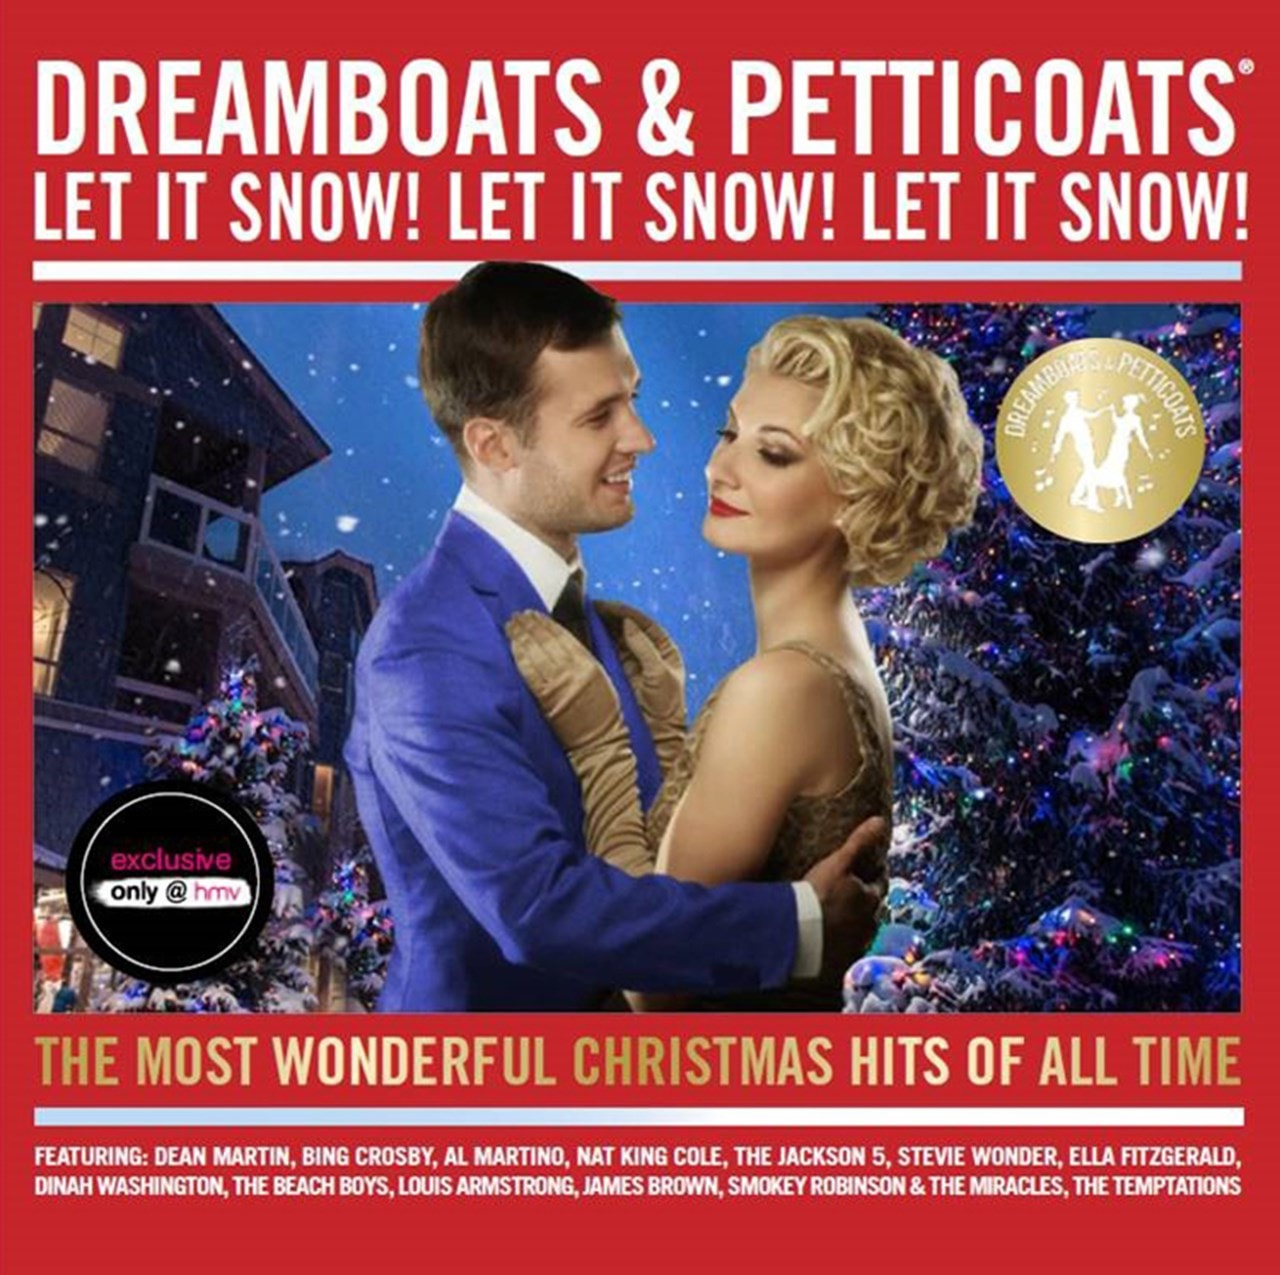 Dreamboats and Petticoats: Let It Snow! Let It Snow! Let It Snow! - 1